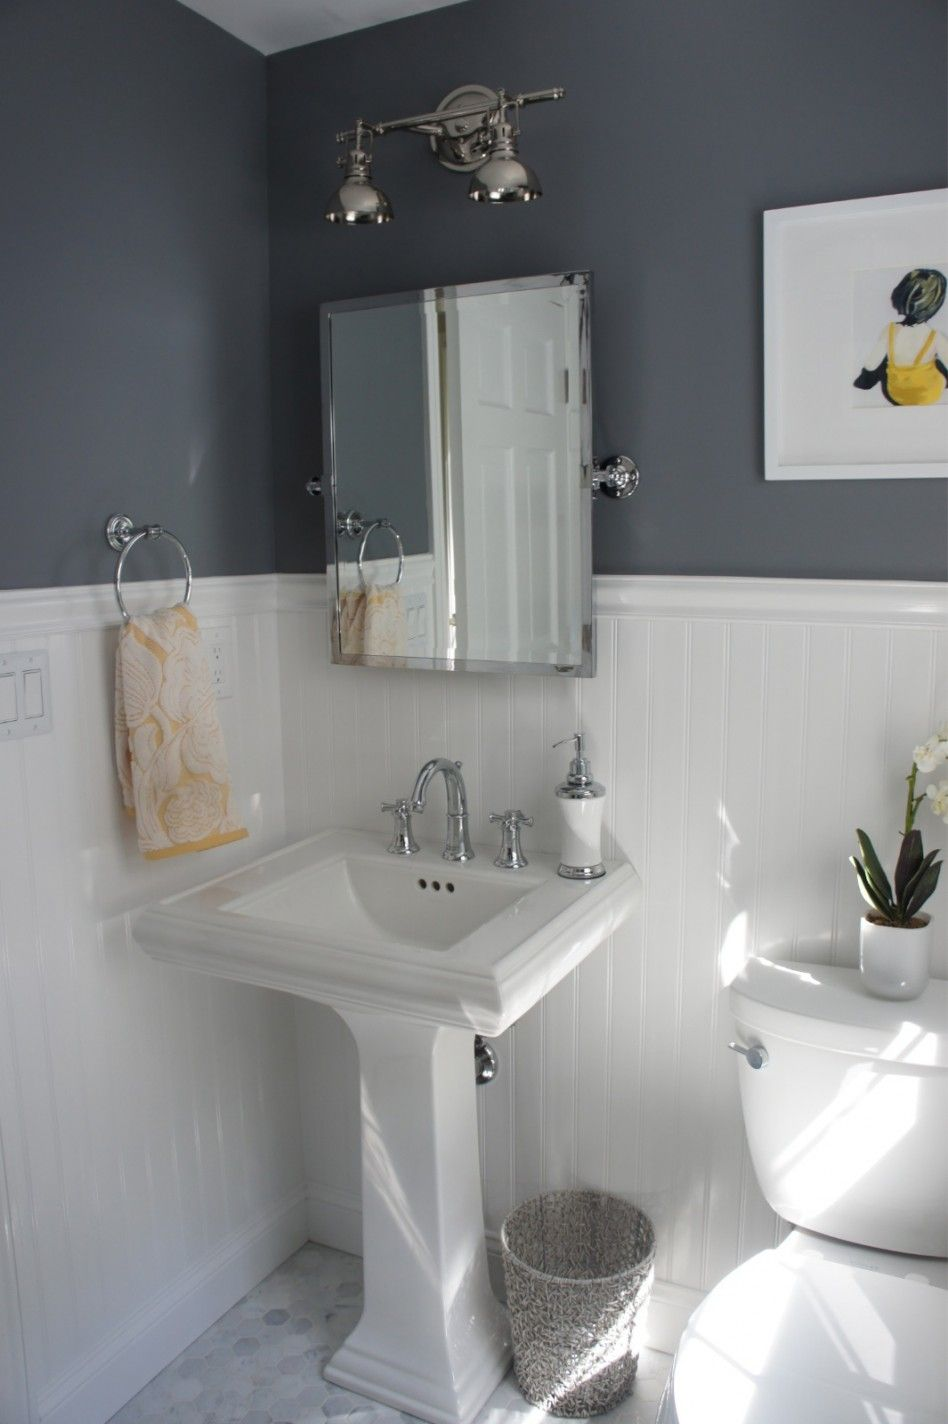 Bathroom, : Cool Small Bathroom Ideas With White Beadboard Wainscoting And  Dark Gray Laminate Walls